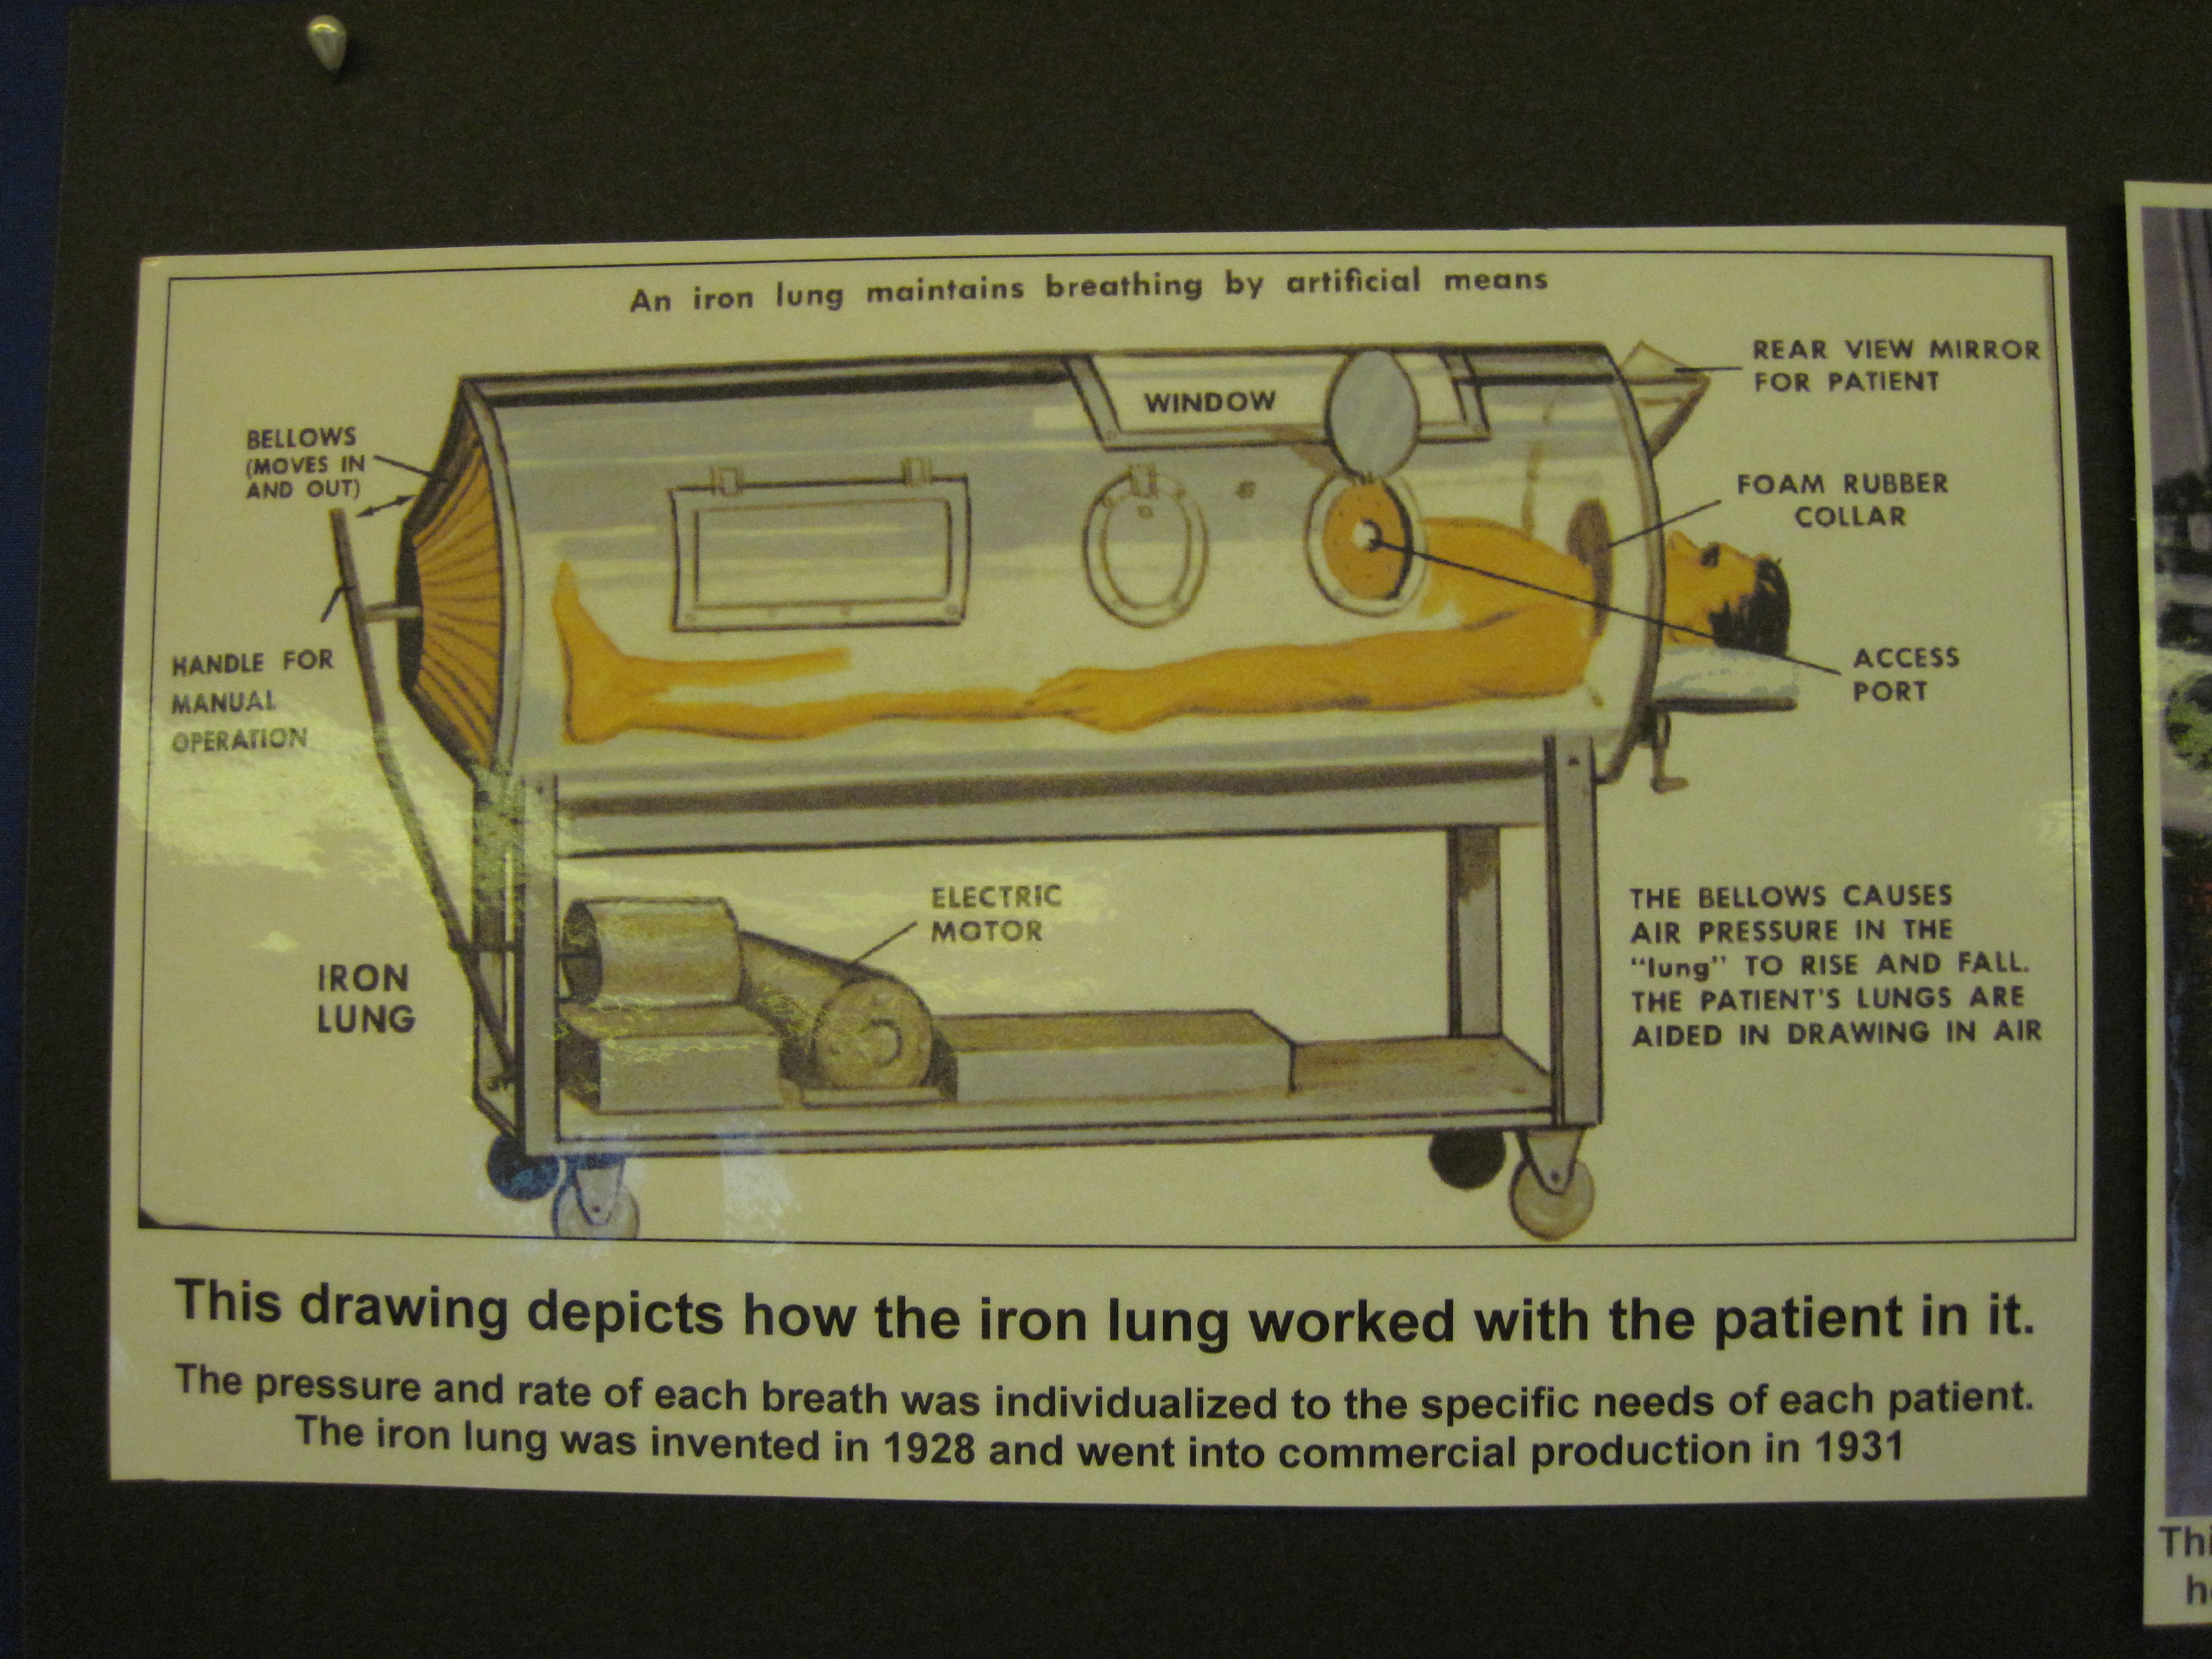 This picture depicts how the iron lung worked with the patient in it